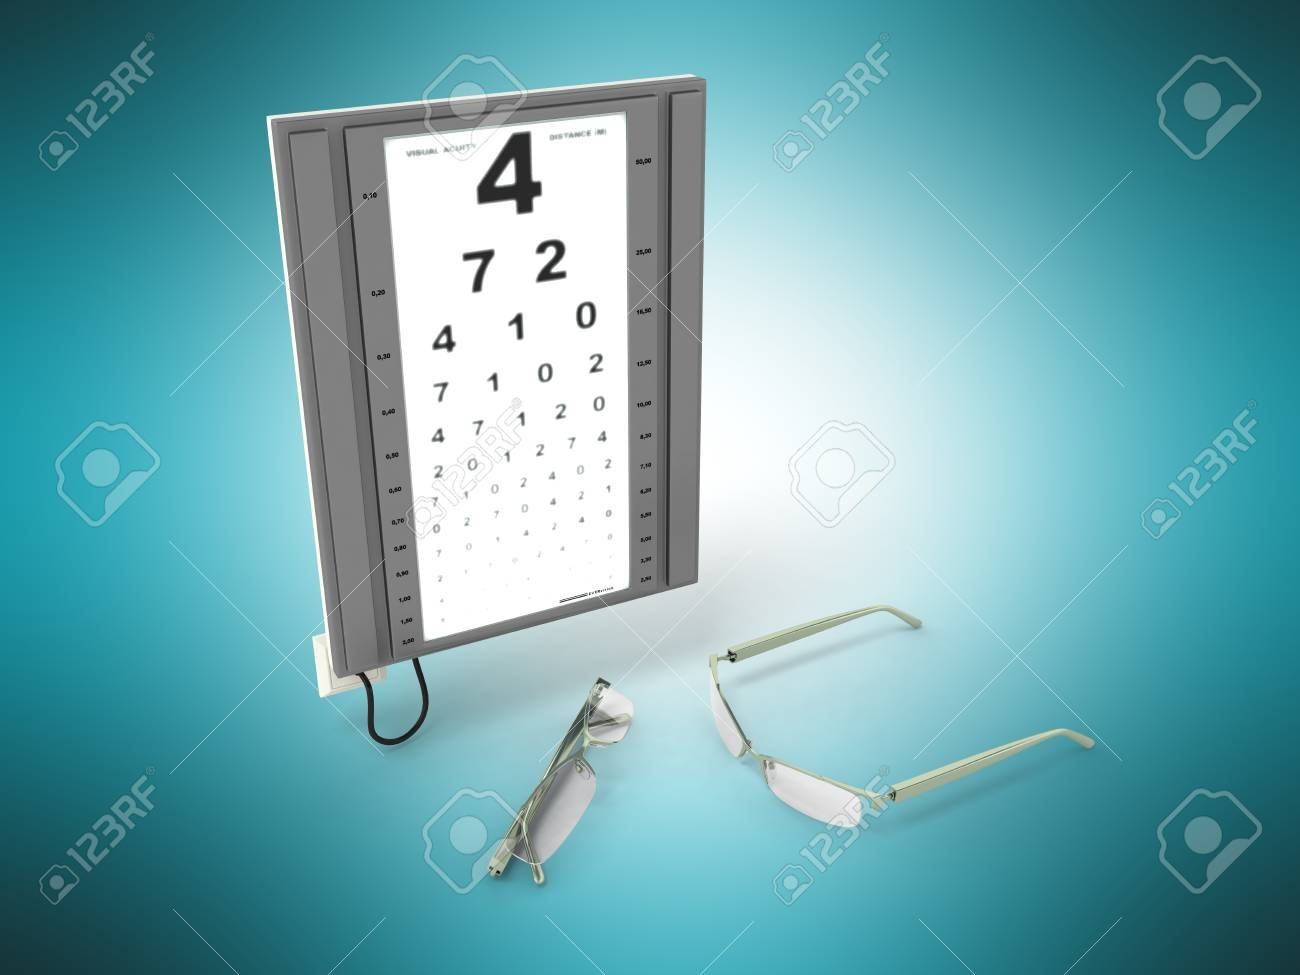 The Optometrist Board 3d Render On A Blue Background Stock Photo 1300x975